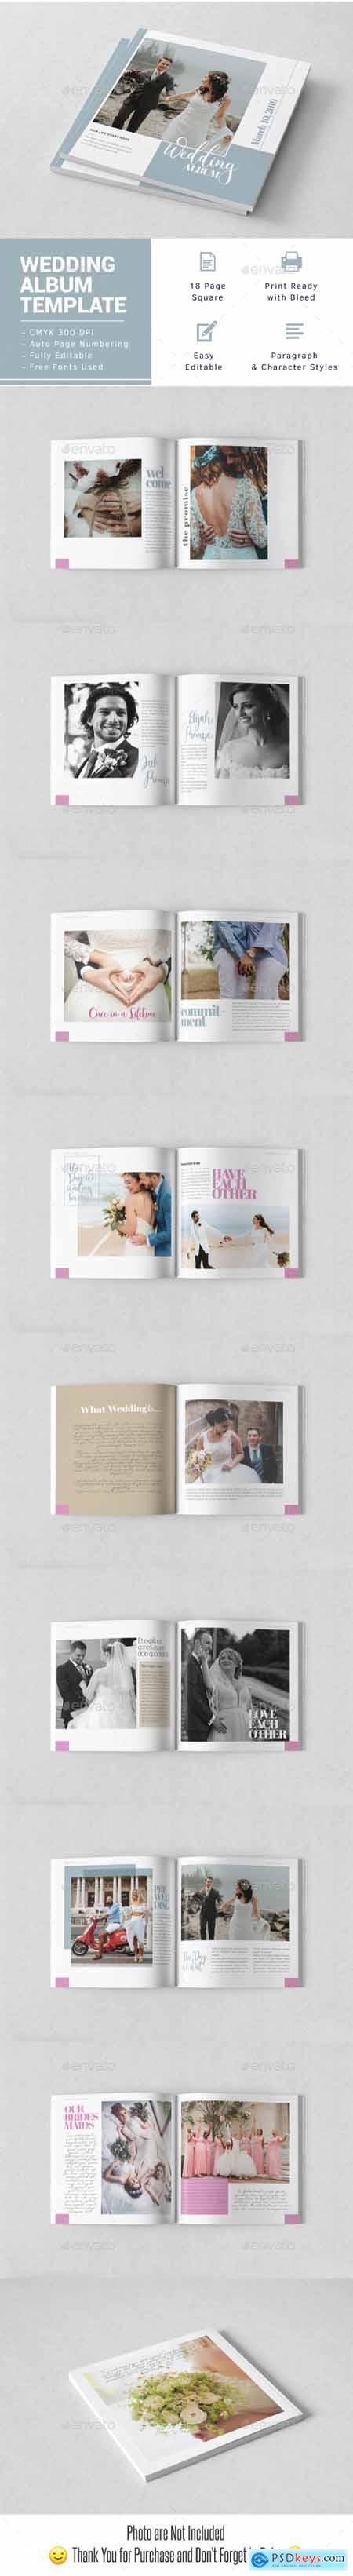 Wedding Album Indesign Template 23810557